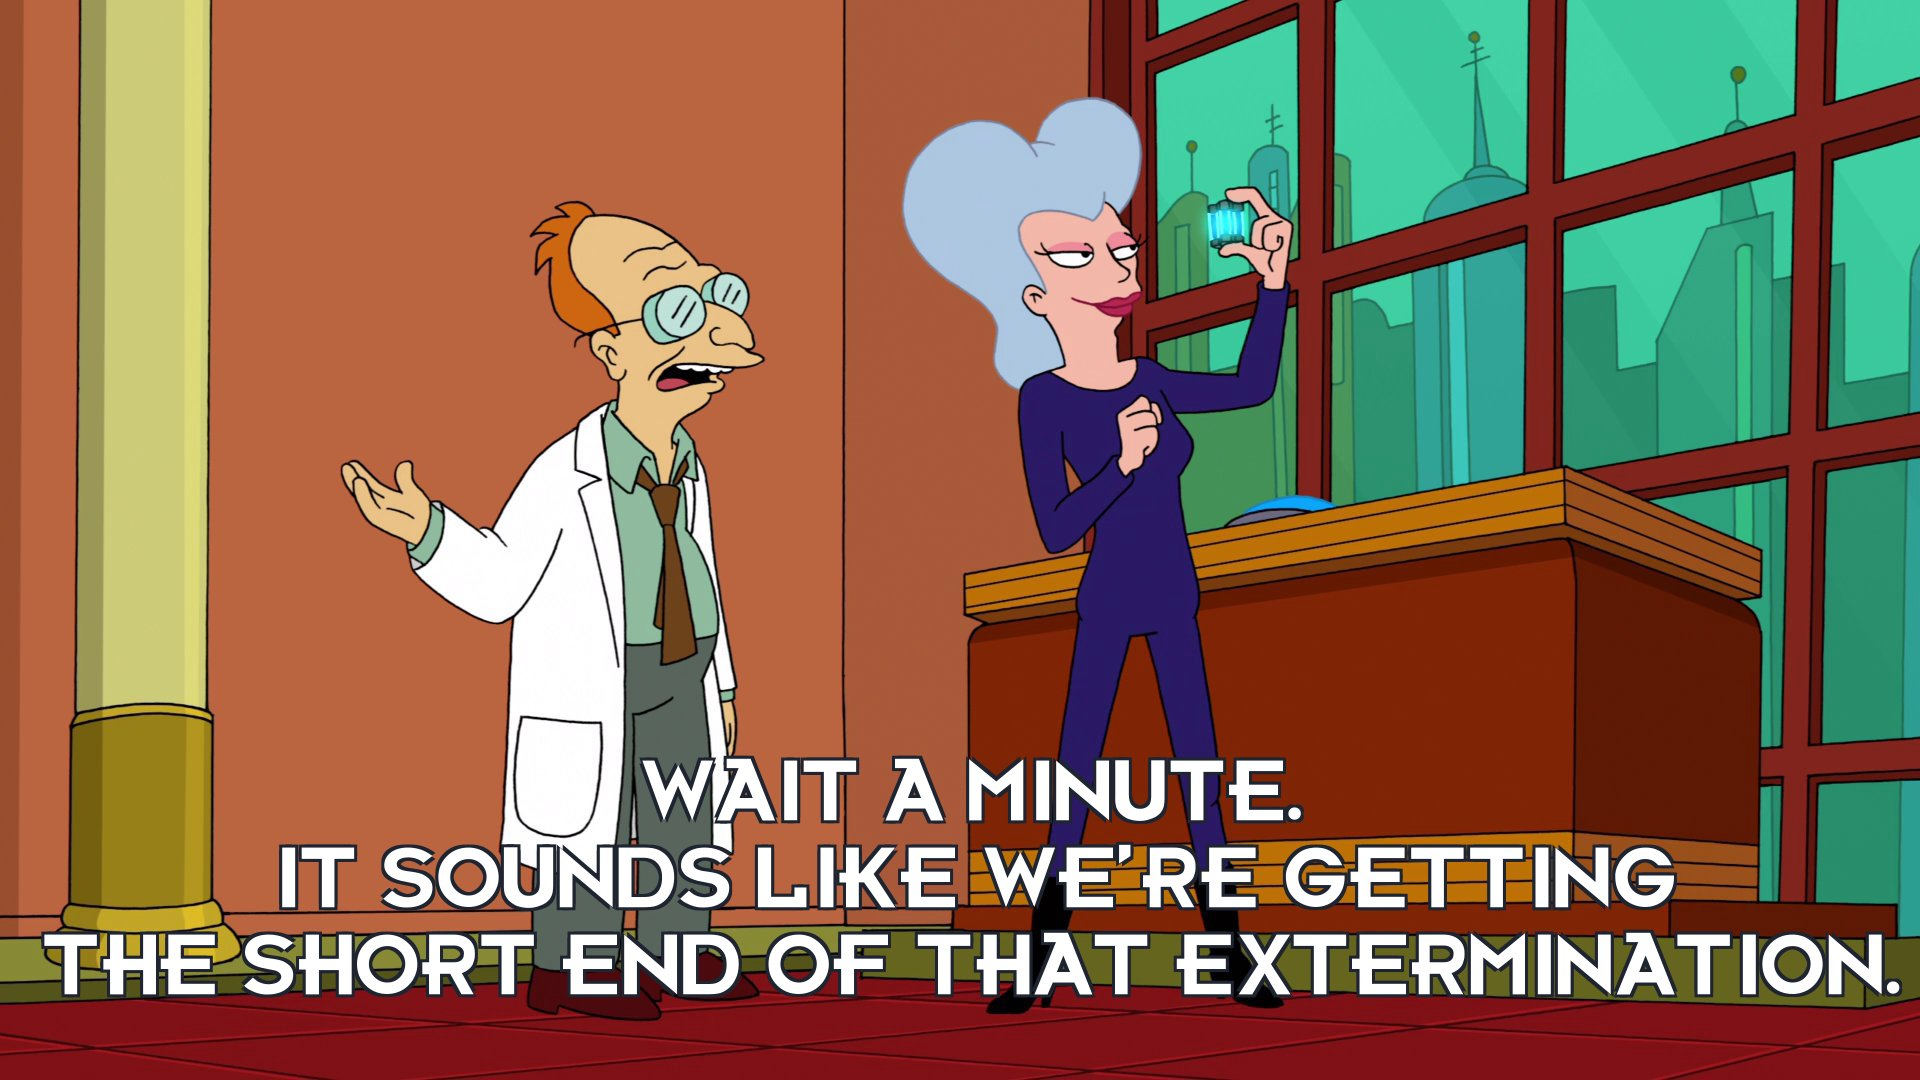 Prof Hubert J Farnsworth: Wait a minute. It sounds like we're getting the short end of that extermination.